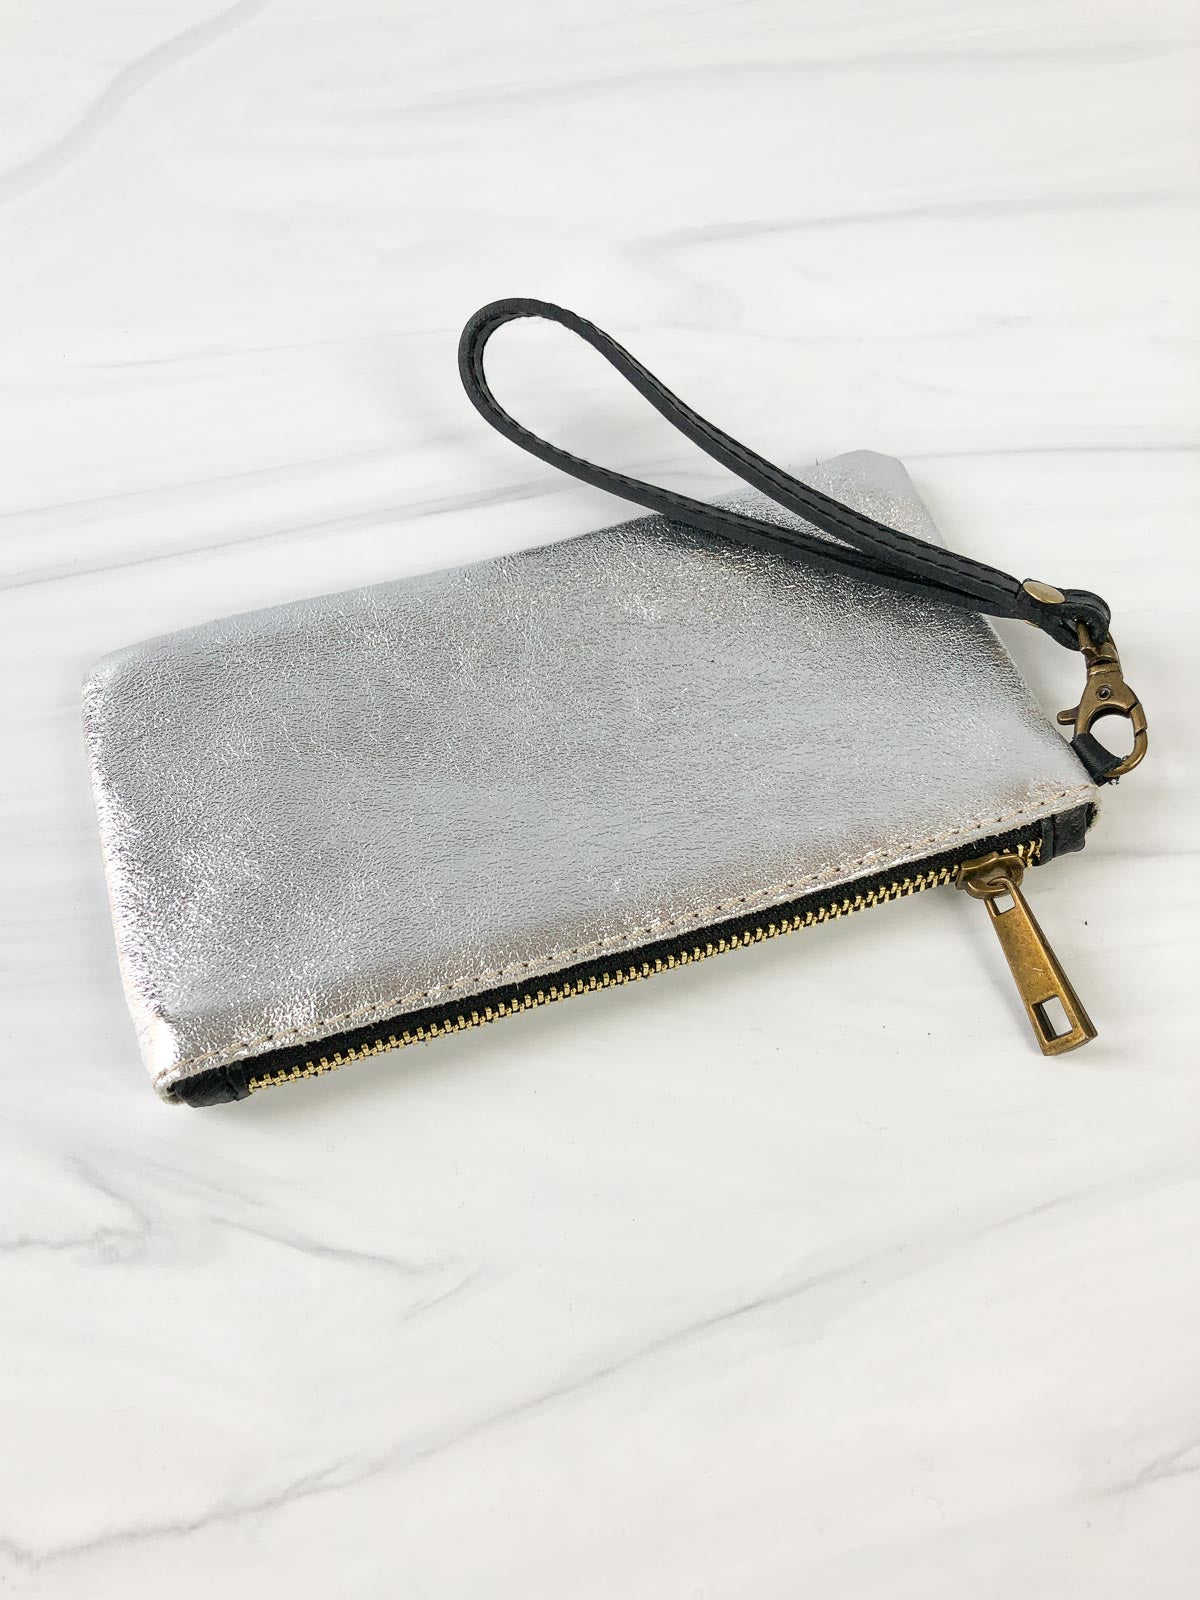 Jijou Capri Ziplet Metallic Leather Wristlet, Silver - Statement Boutique